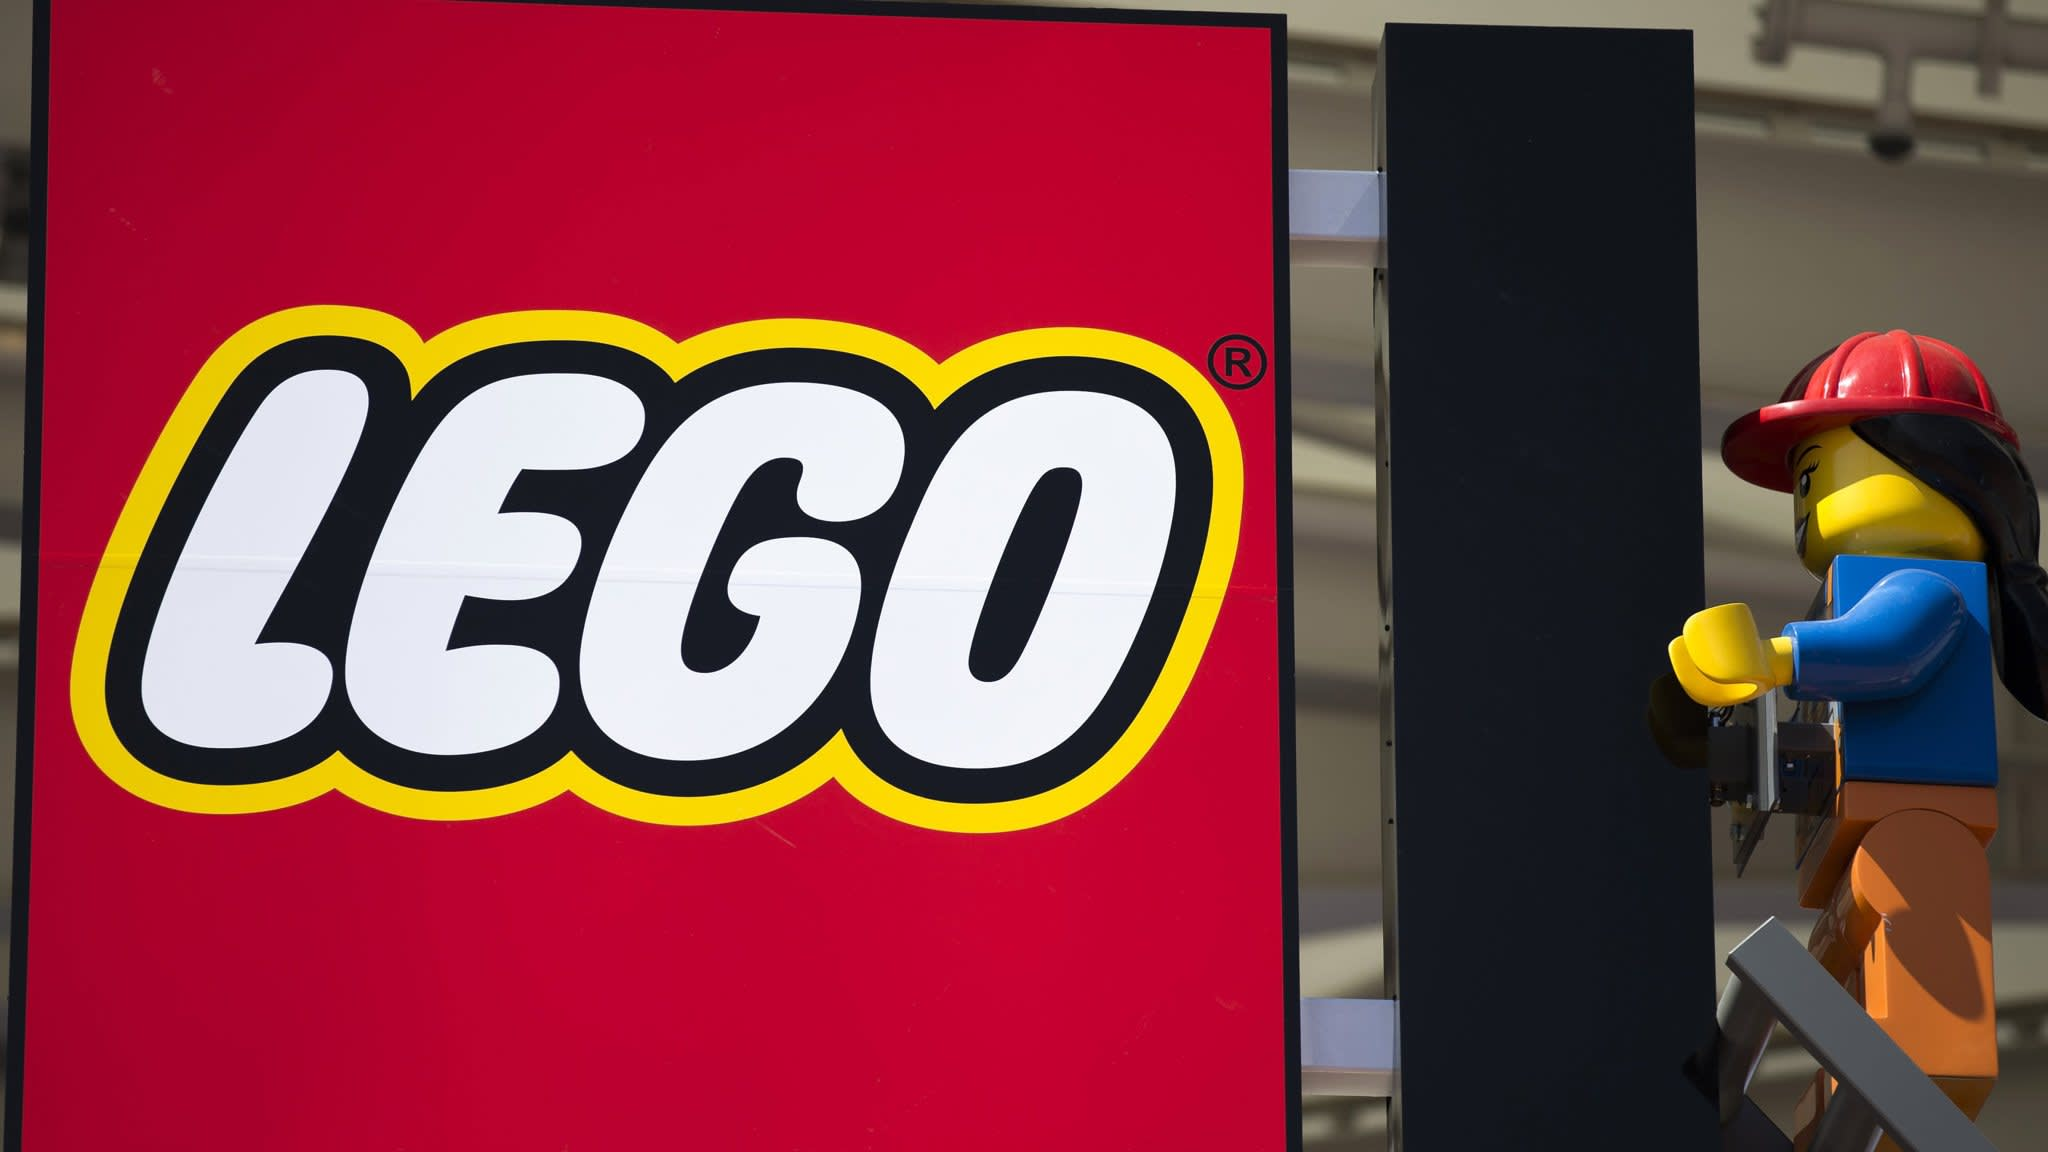 Lego appoints second CEO in 8 months | Financial Times